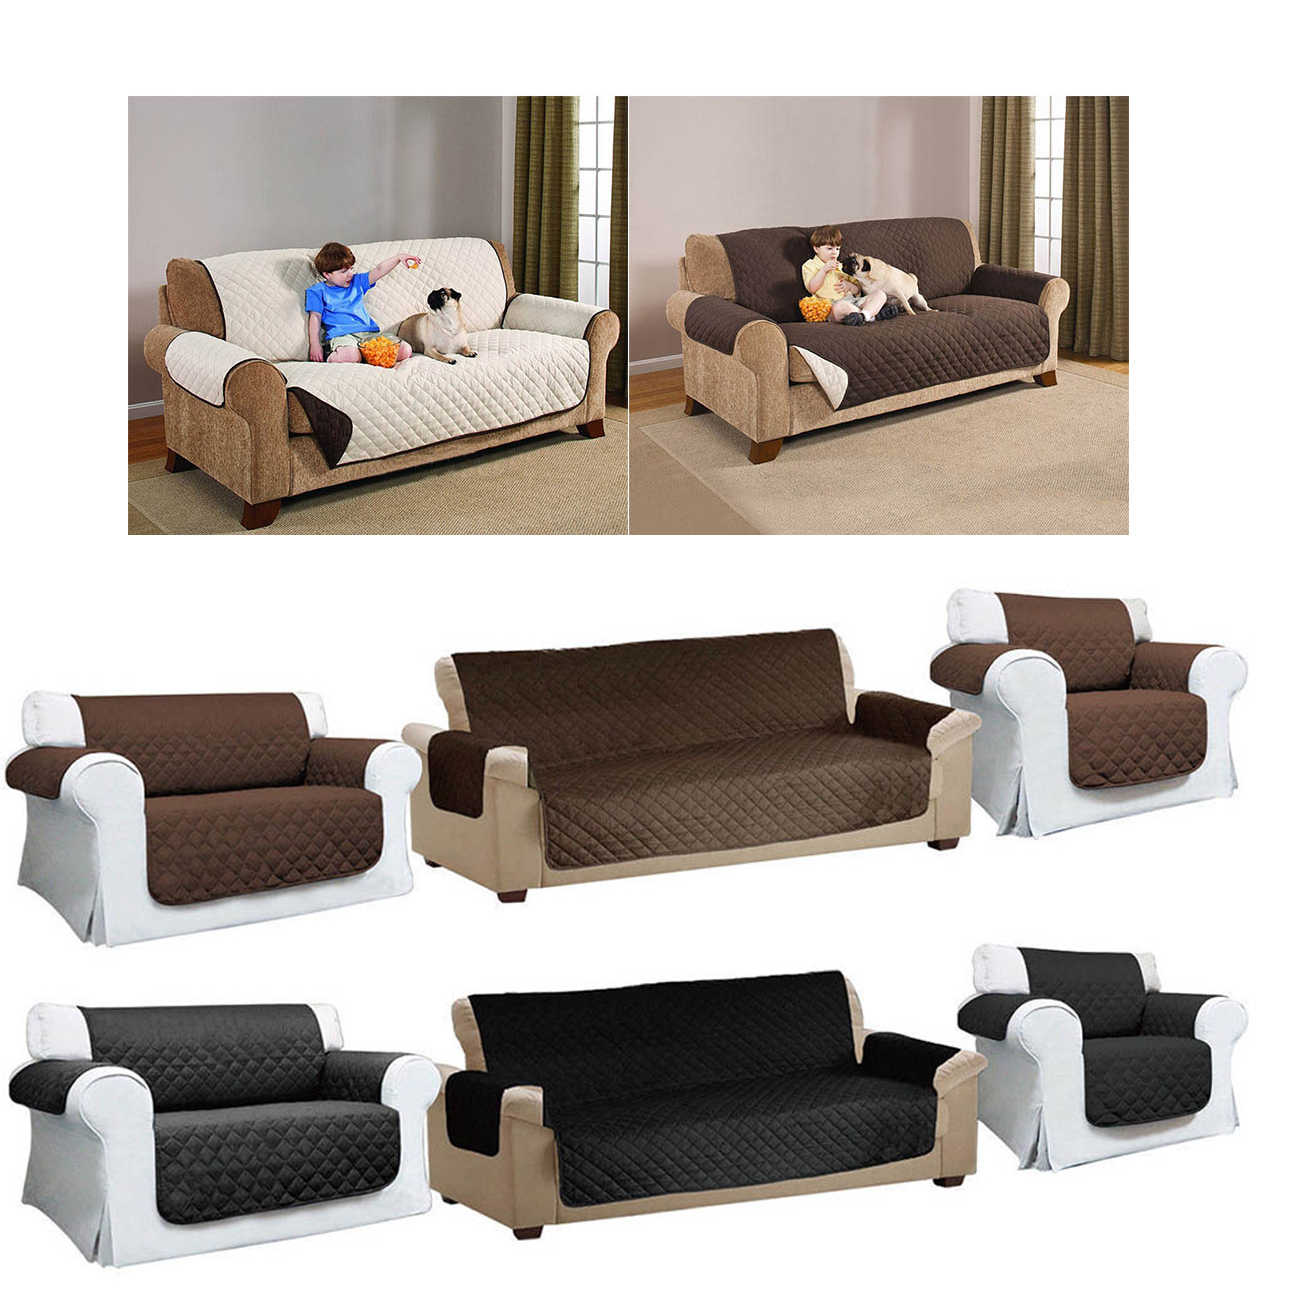 Quilted Sofa Arm Chair Settee Pet Protector Slip Cover Furniture Cushion Throws GQ999